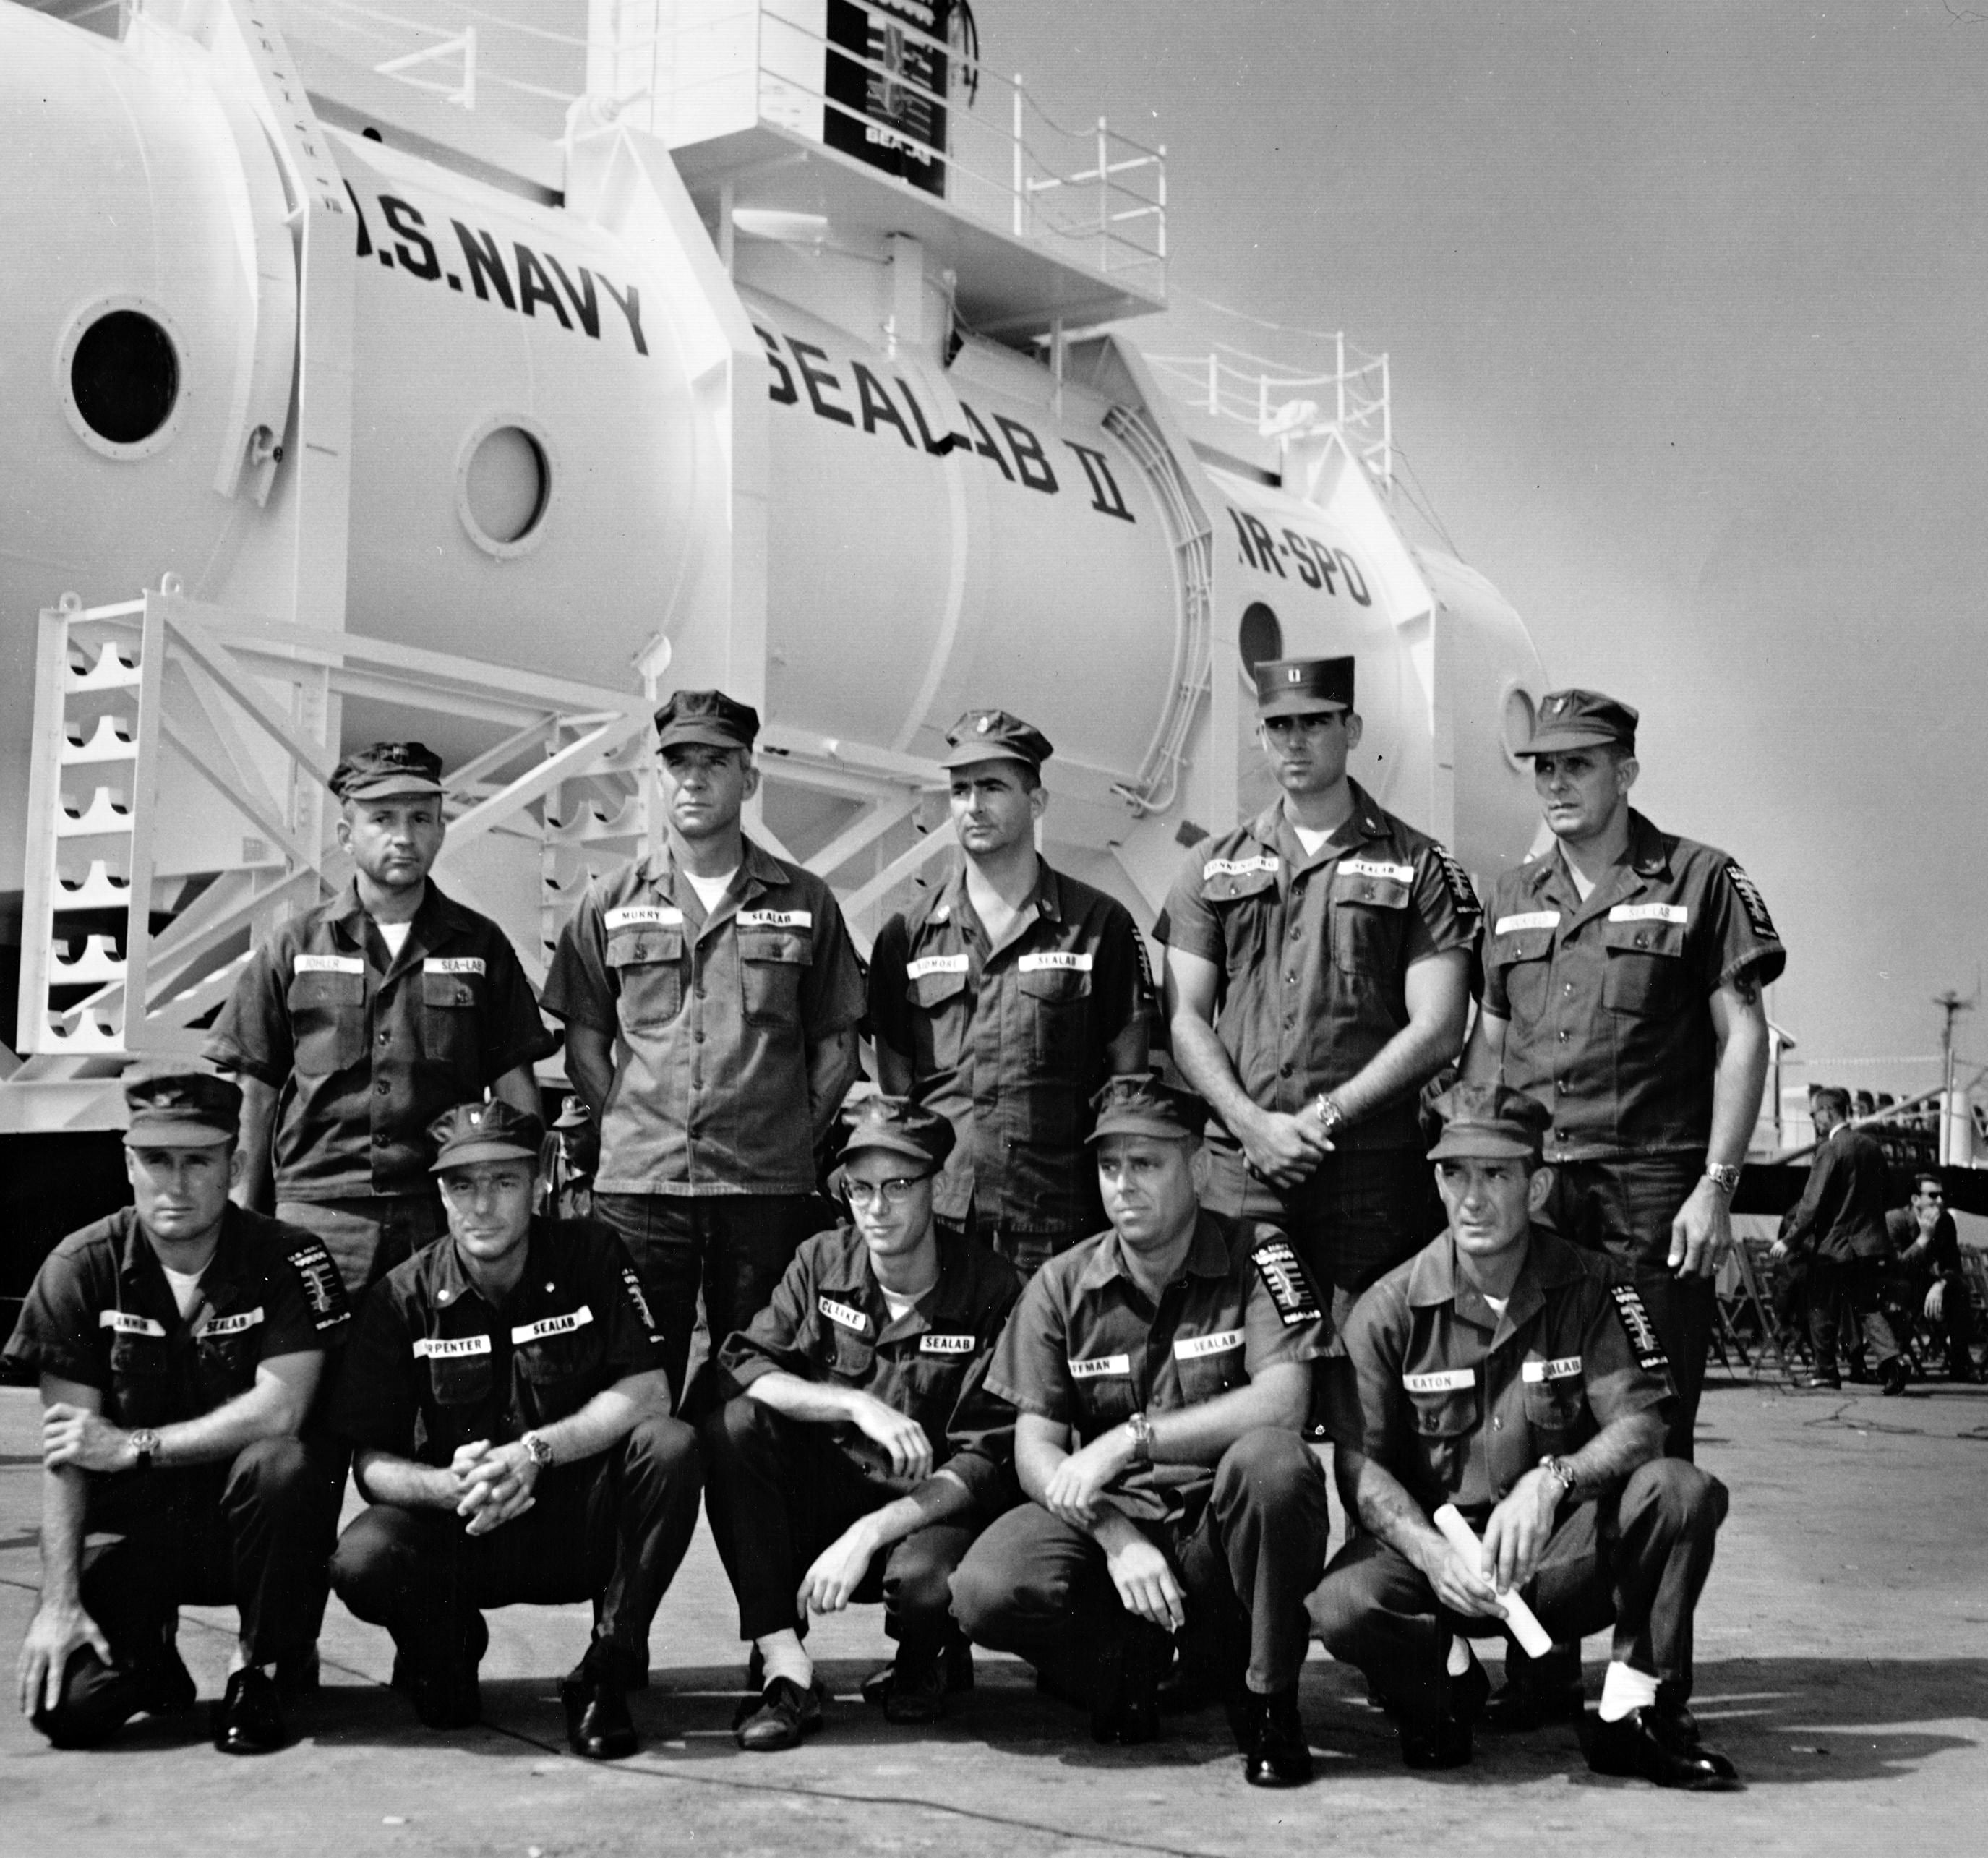 SEALAB II team before boarding all sporting their Rolex dive watches for A Collected Man London